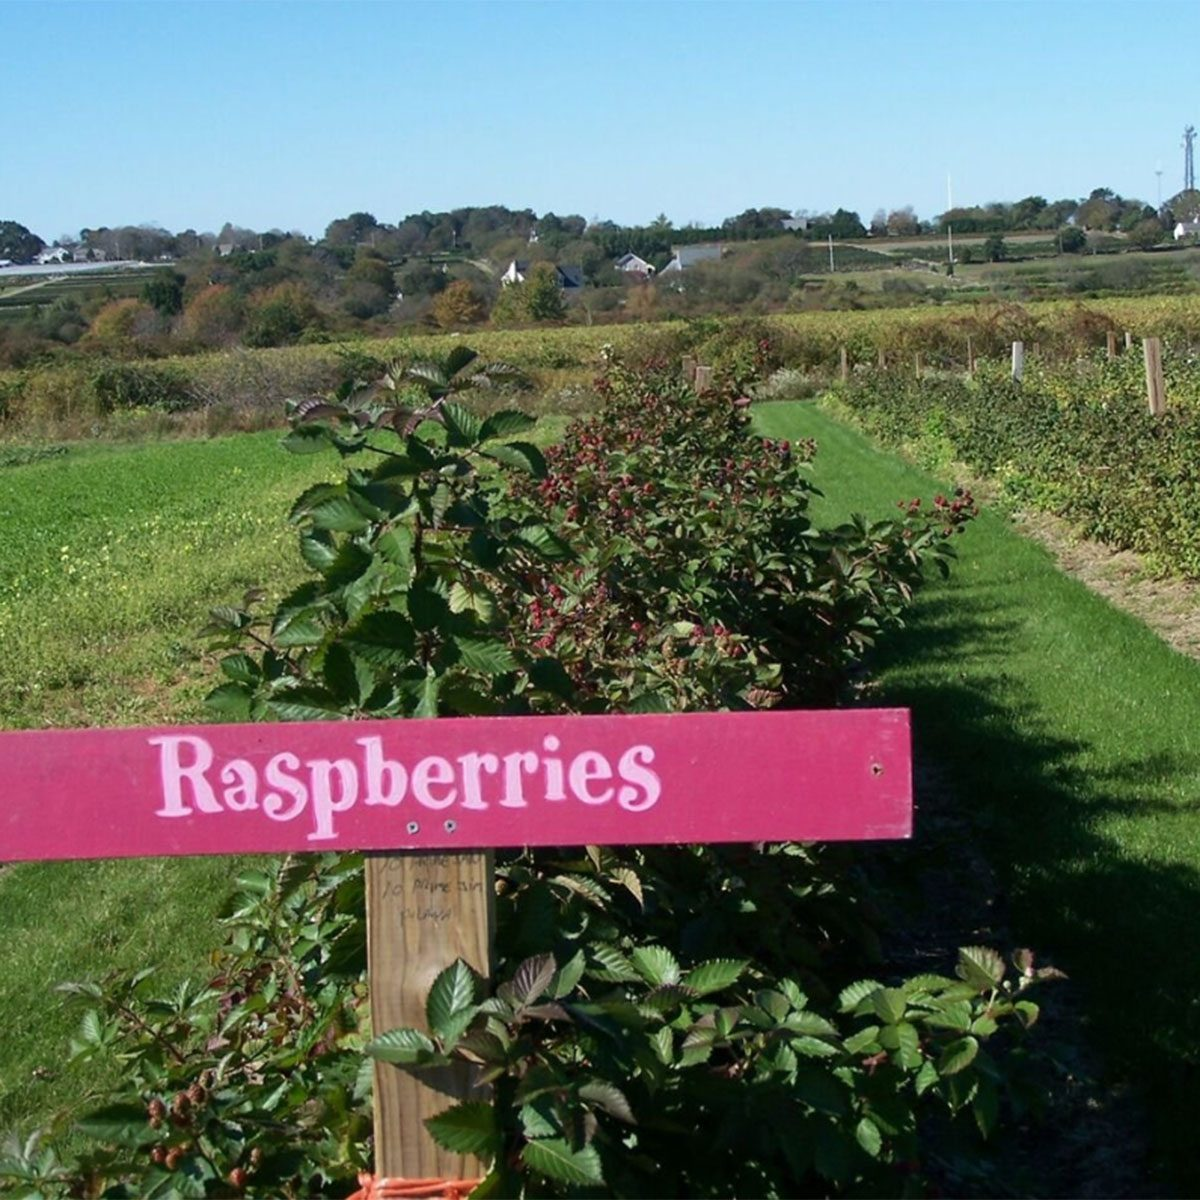 Sweet Berry Farm raspberries